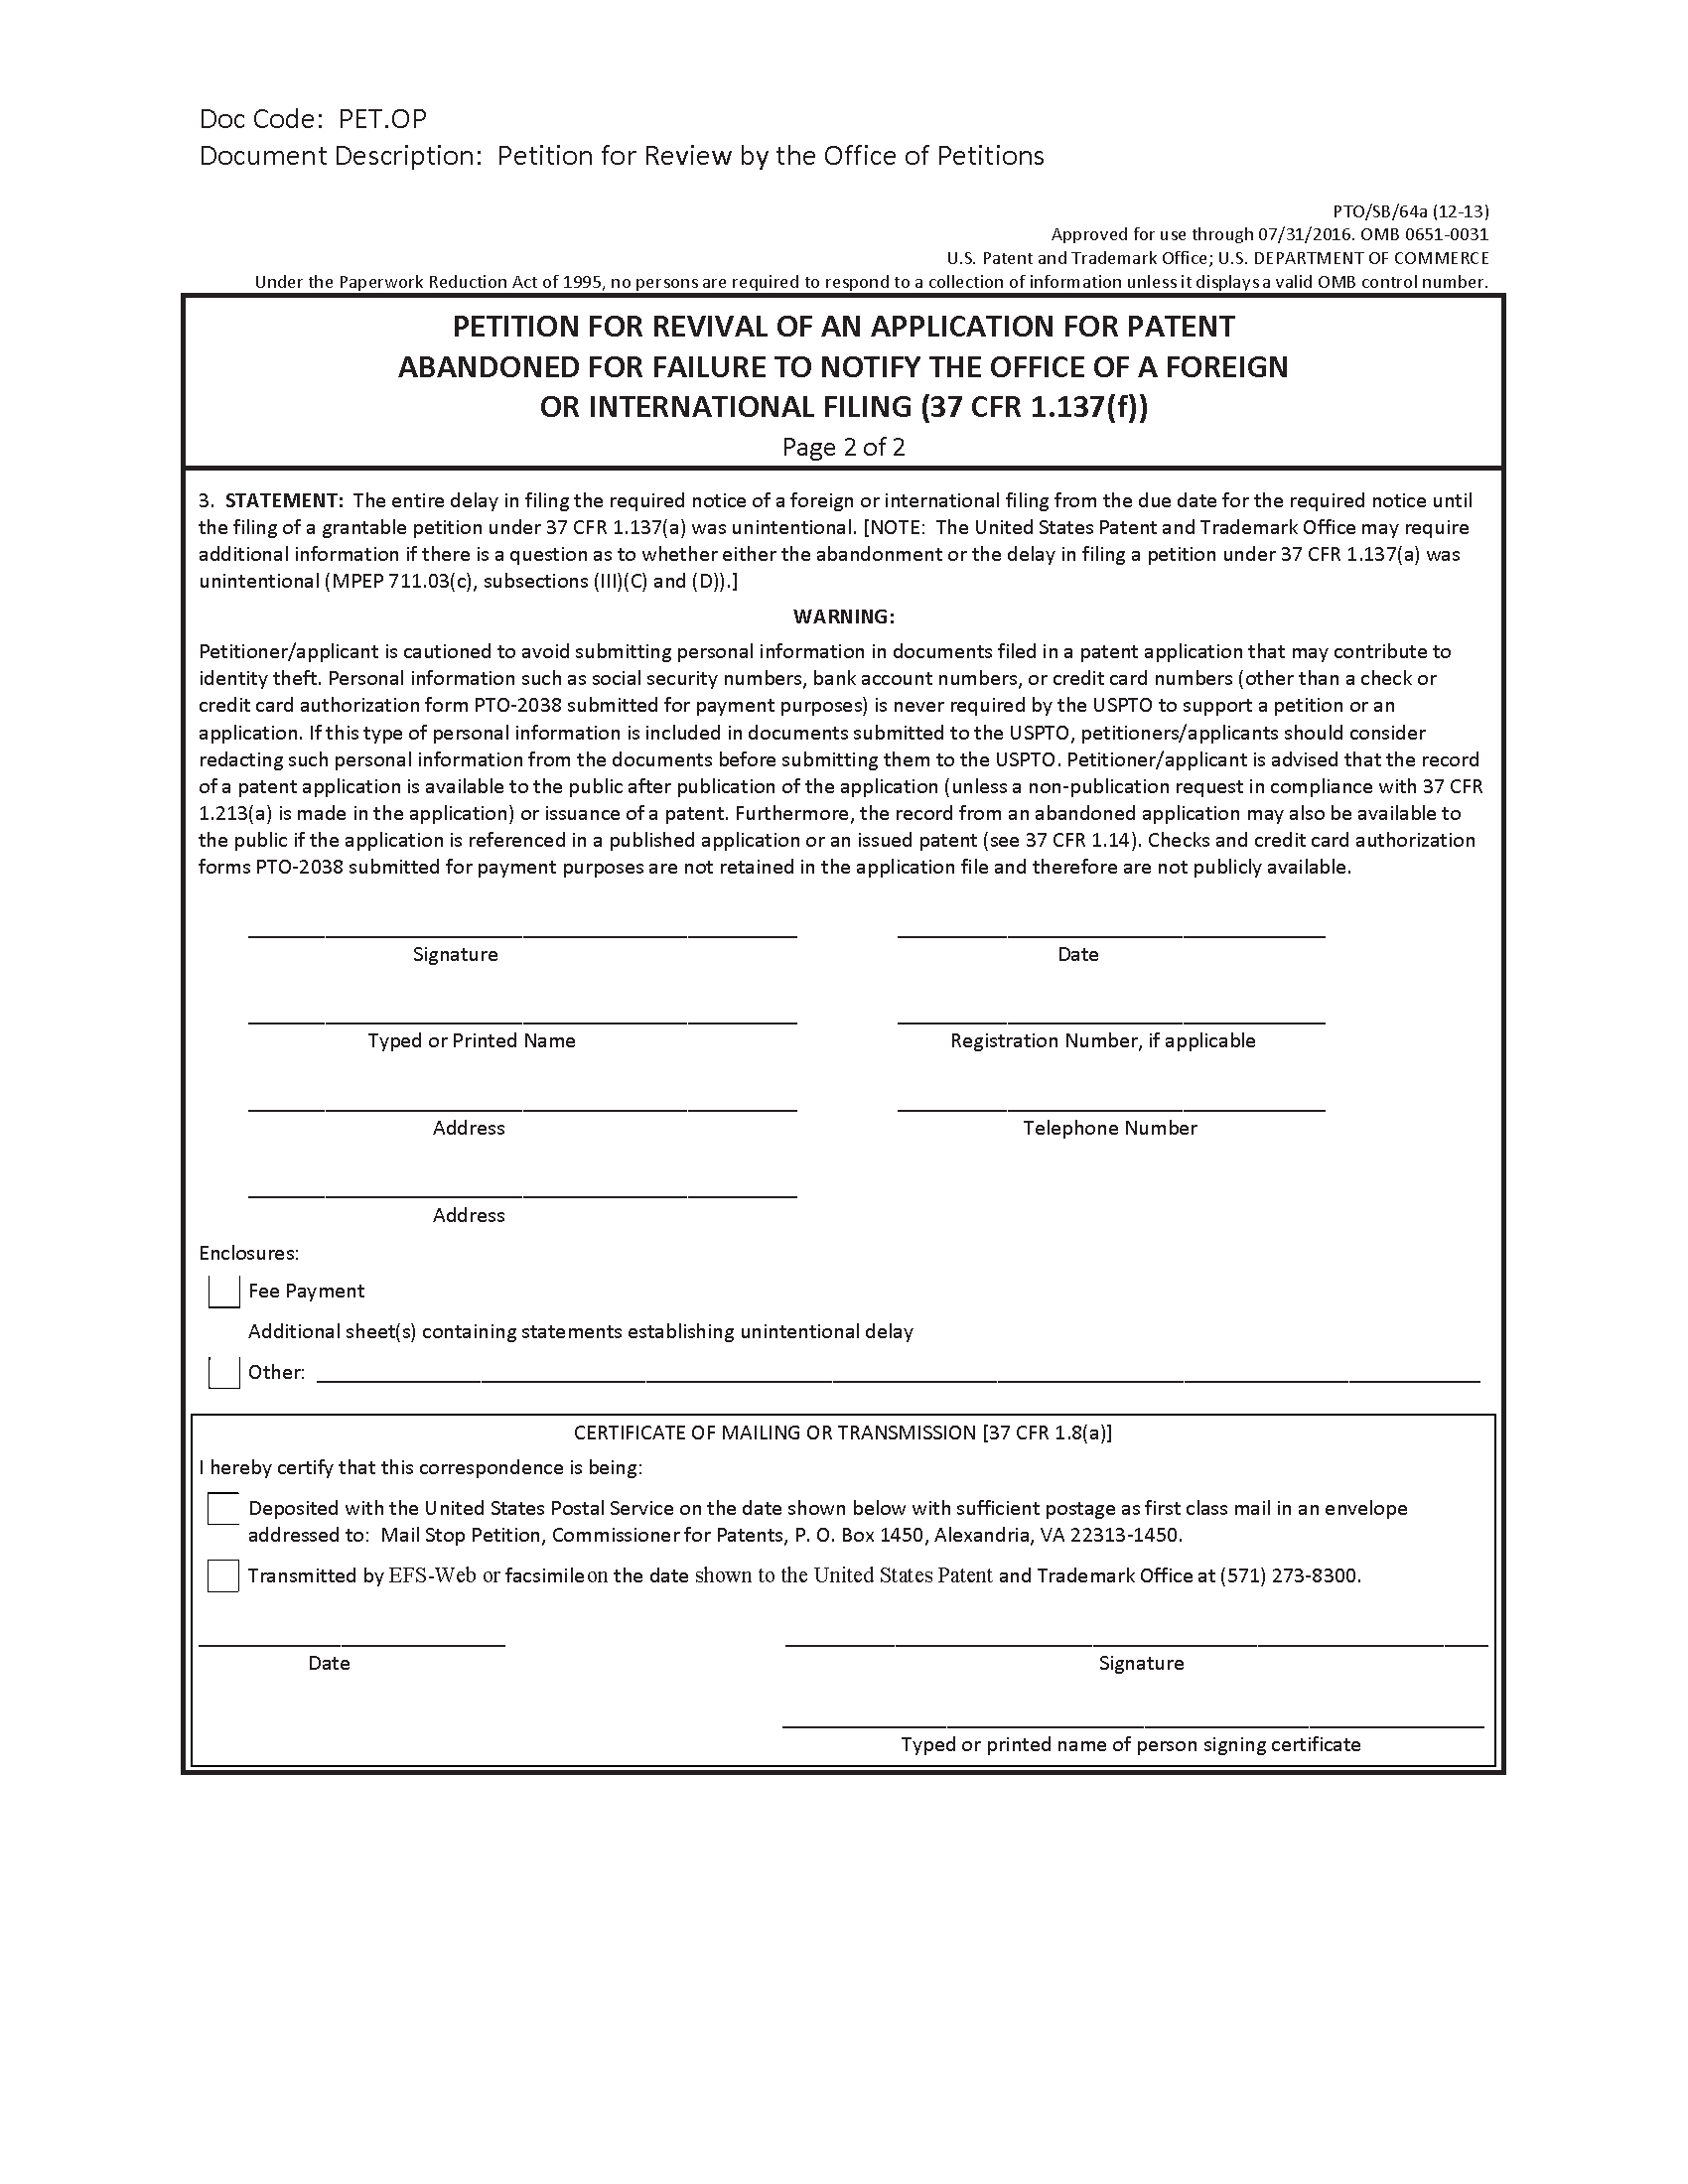 Patent Infringement Letter Template - Mpep 711 03 C Petitions Relating to Abandonment Jan 2018 Bitlaw